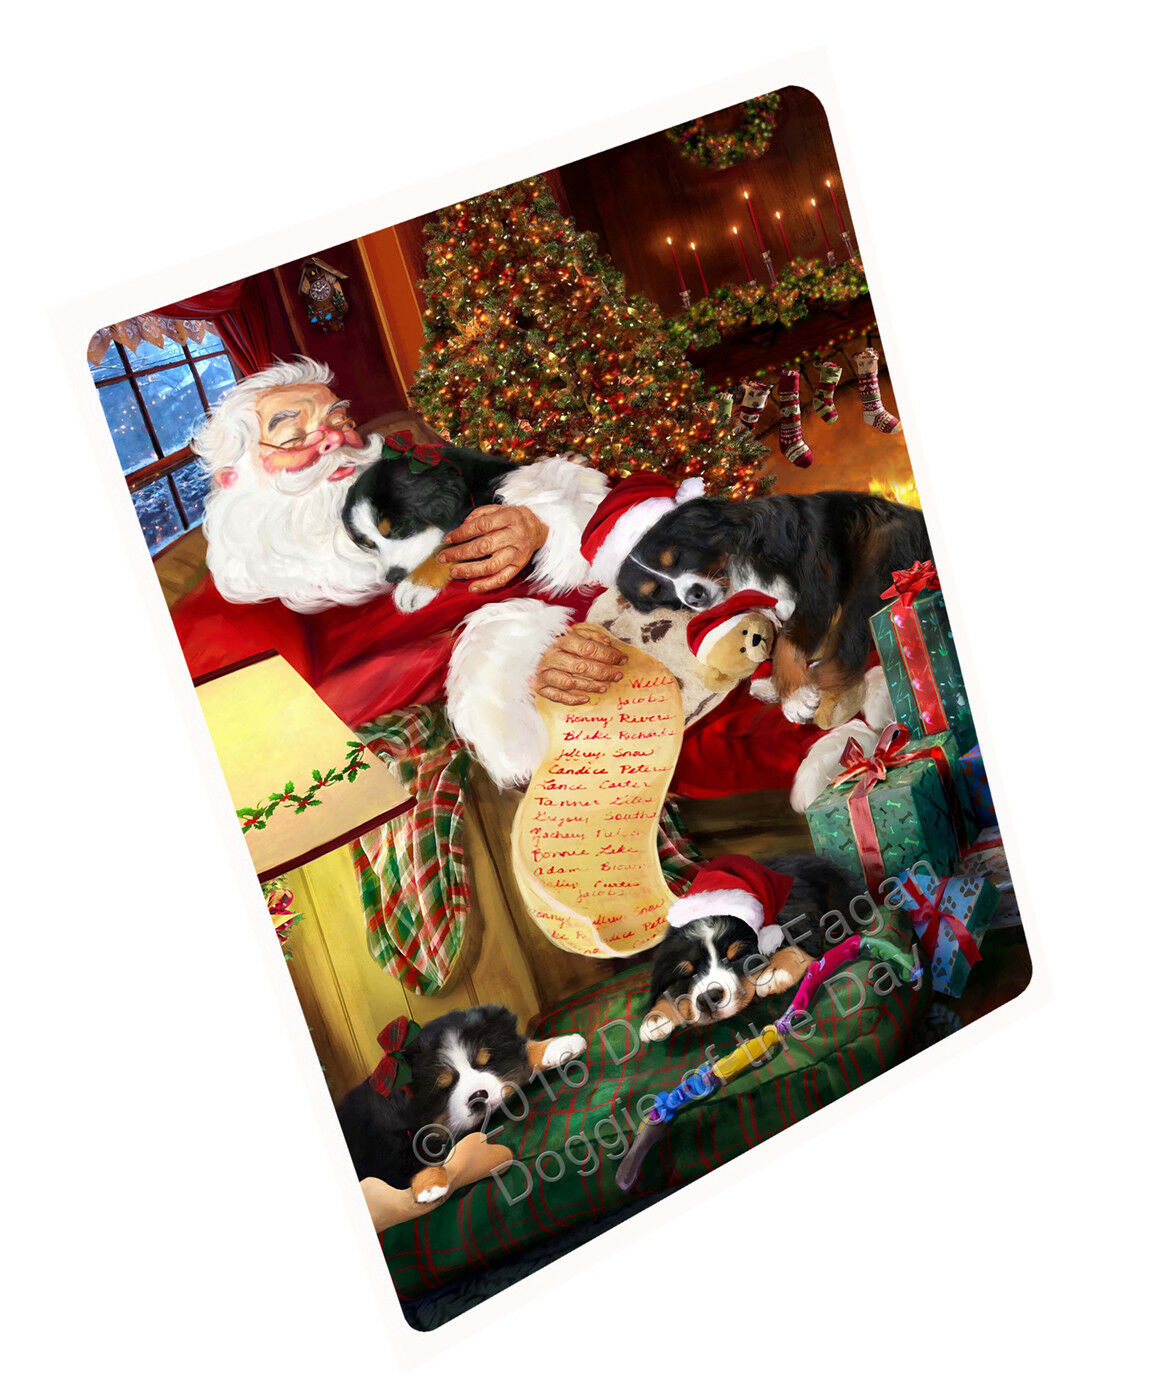 Bernese Mountain Dog Sleeping with Santa Woven Throw Sherpa Fleece Blanket NWT